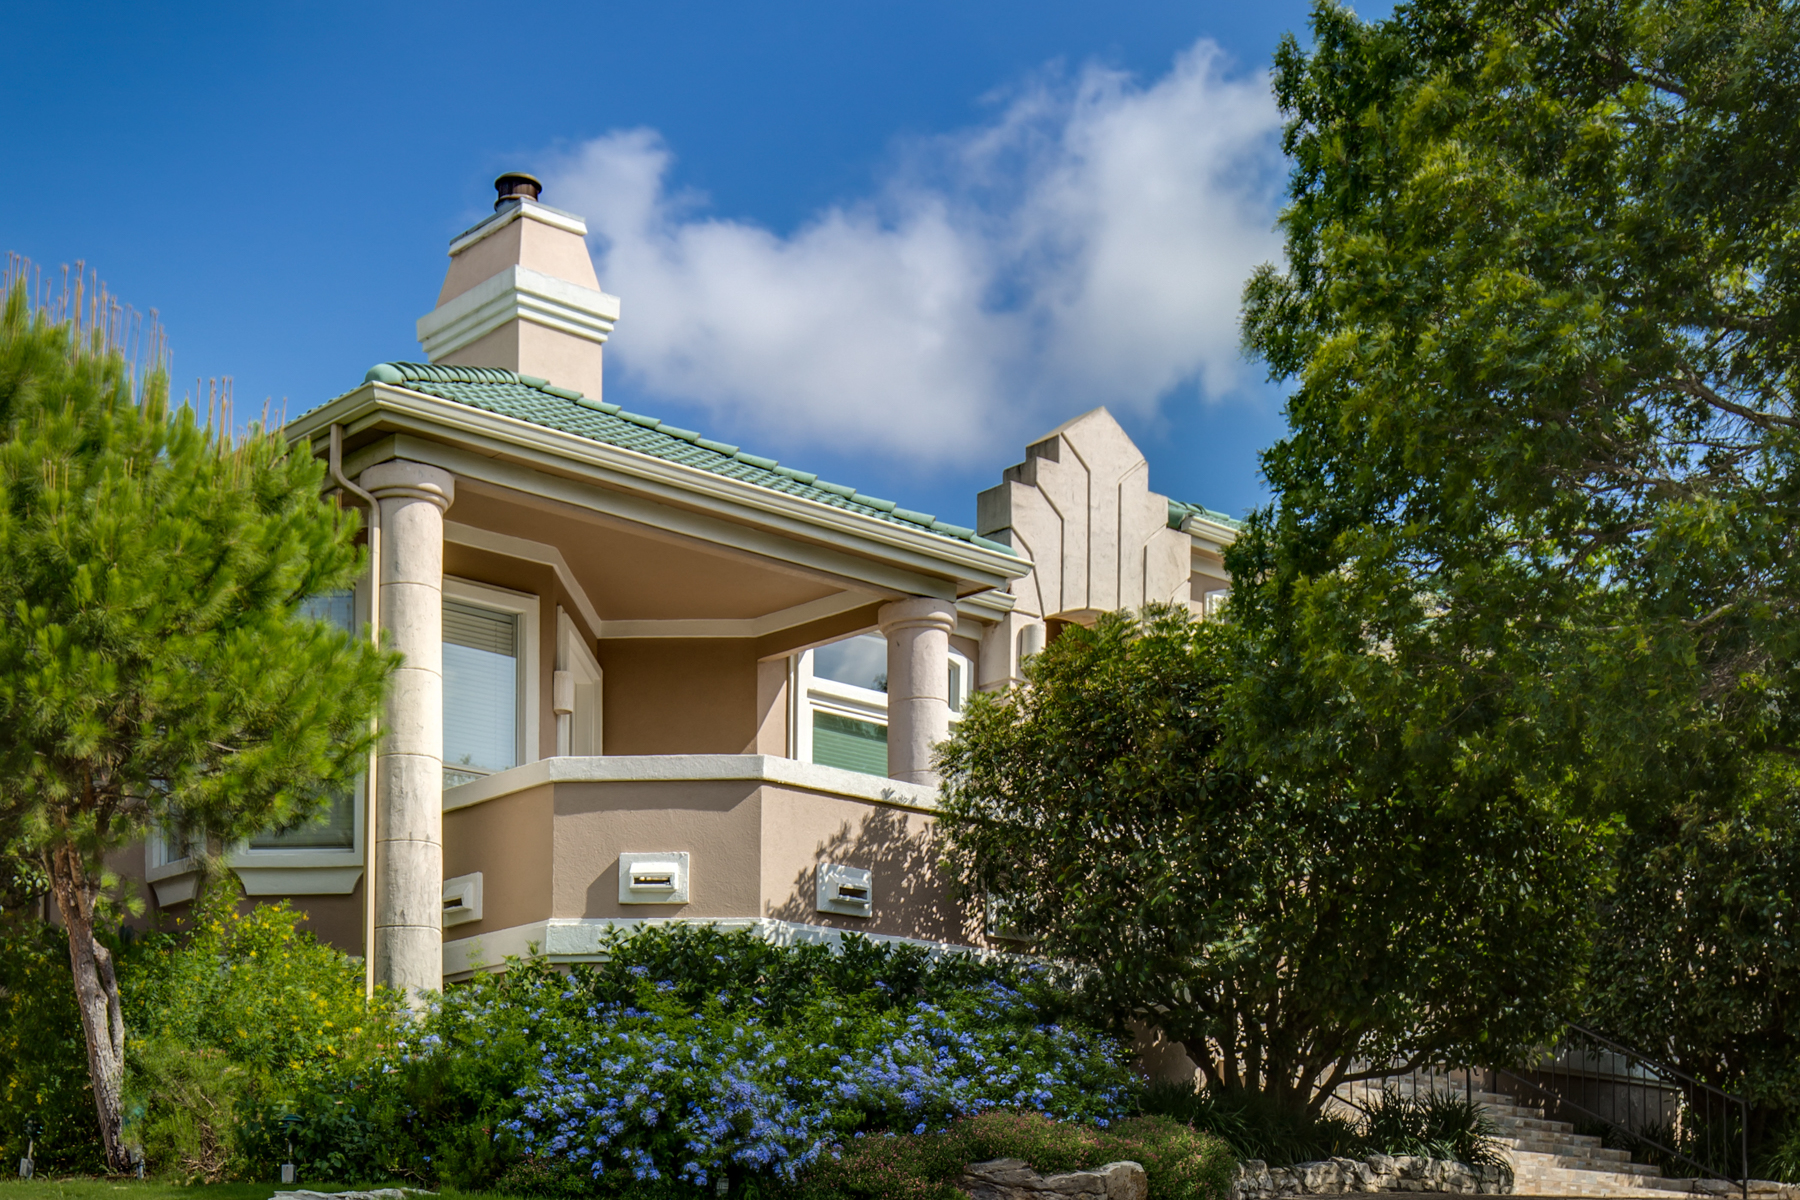 Additional photo for property listing at Stunning Villa in Greystone Country Estates 19122 Nature Oaks San Antonio, Texas 78258 United States